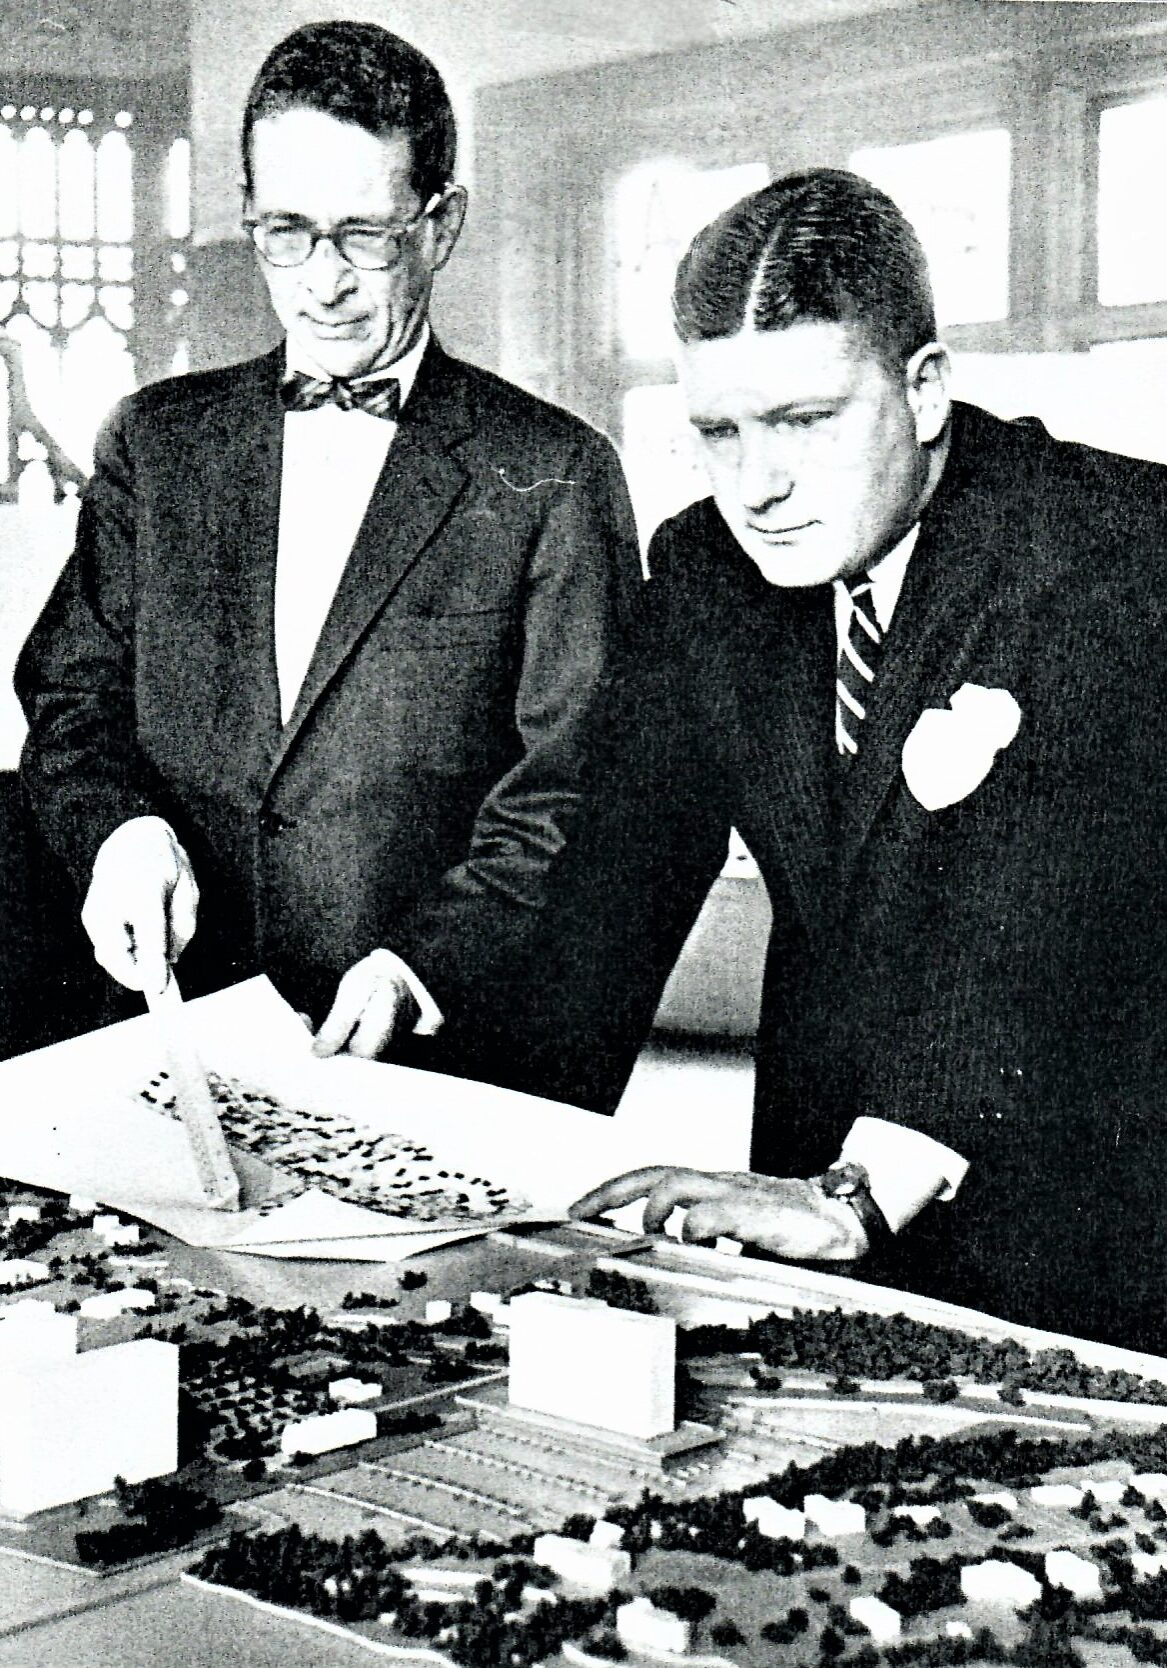 James D. Ireland Jr. and John B. Dempsey II